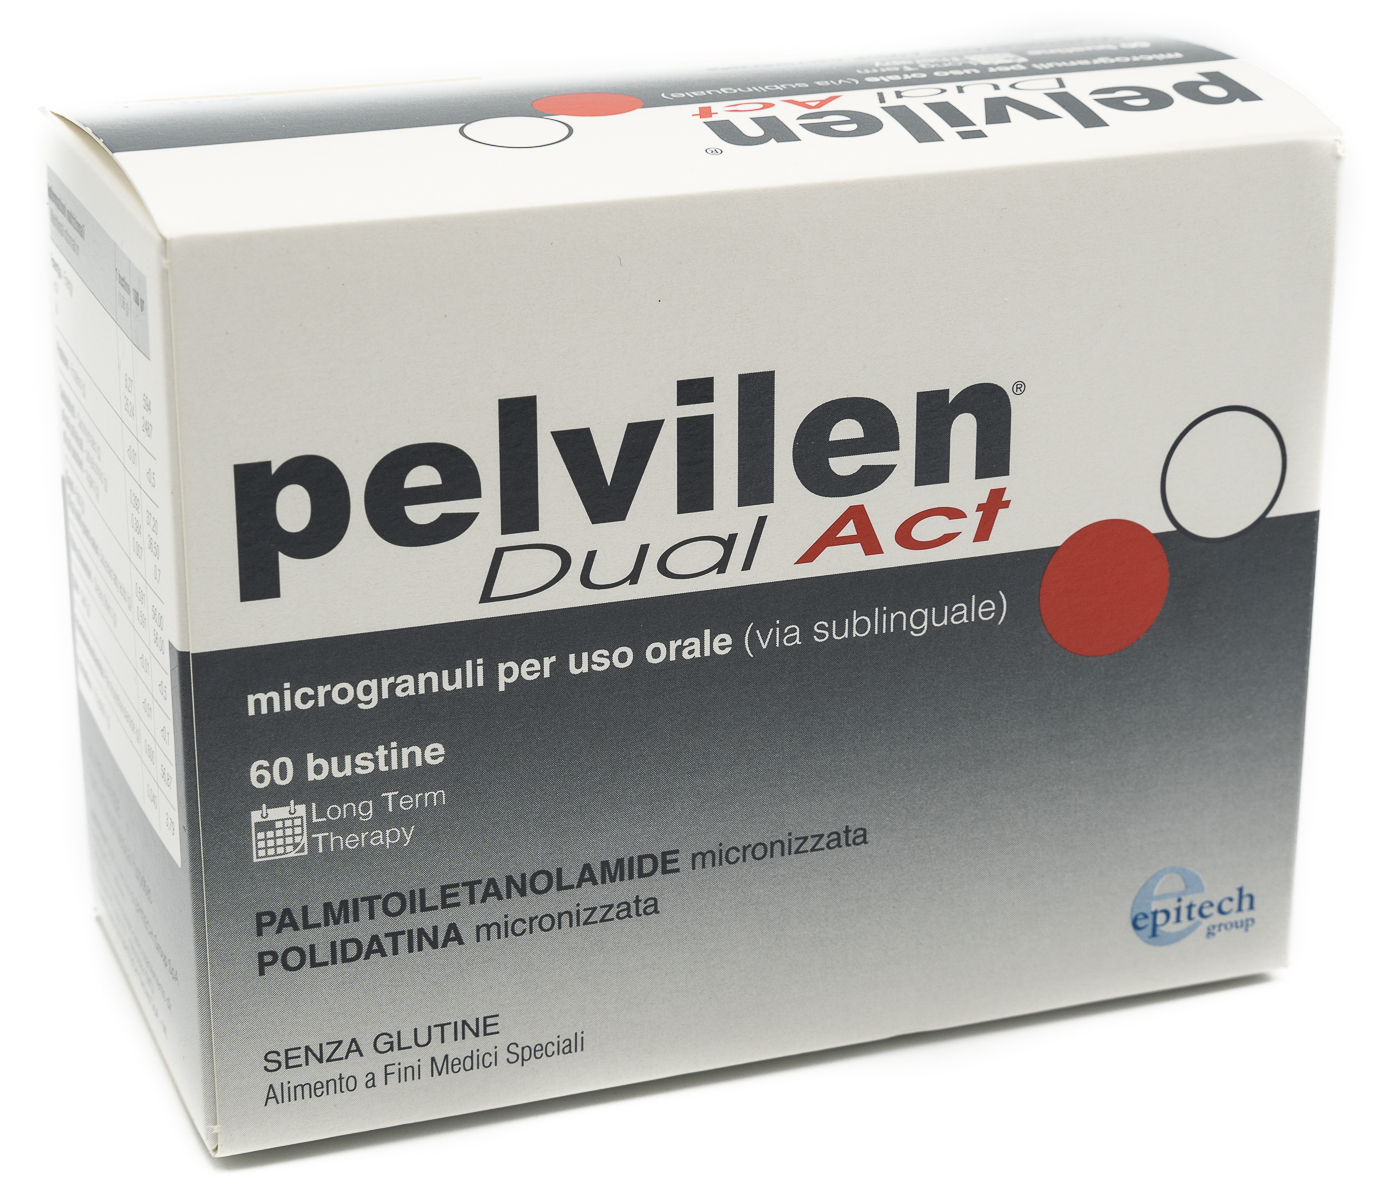 EPITECH GROUP SpA Pelvilen Dual Act 60bst